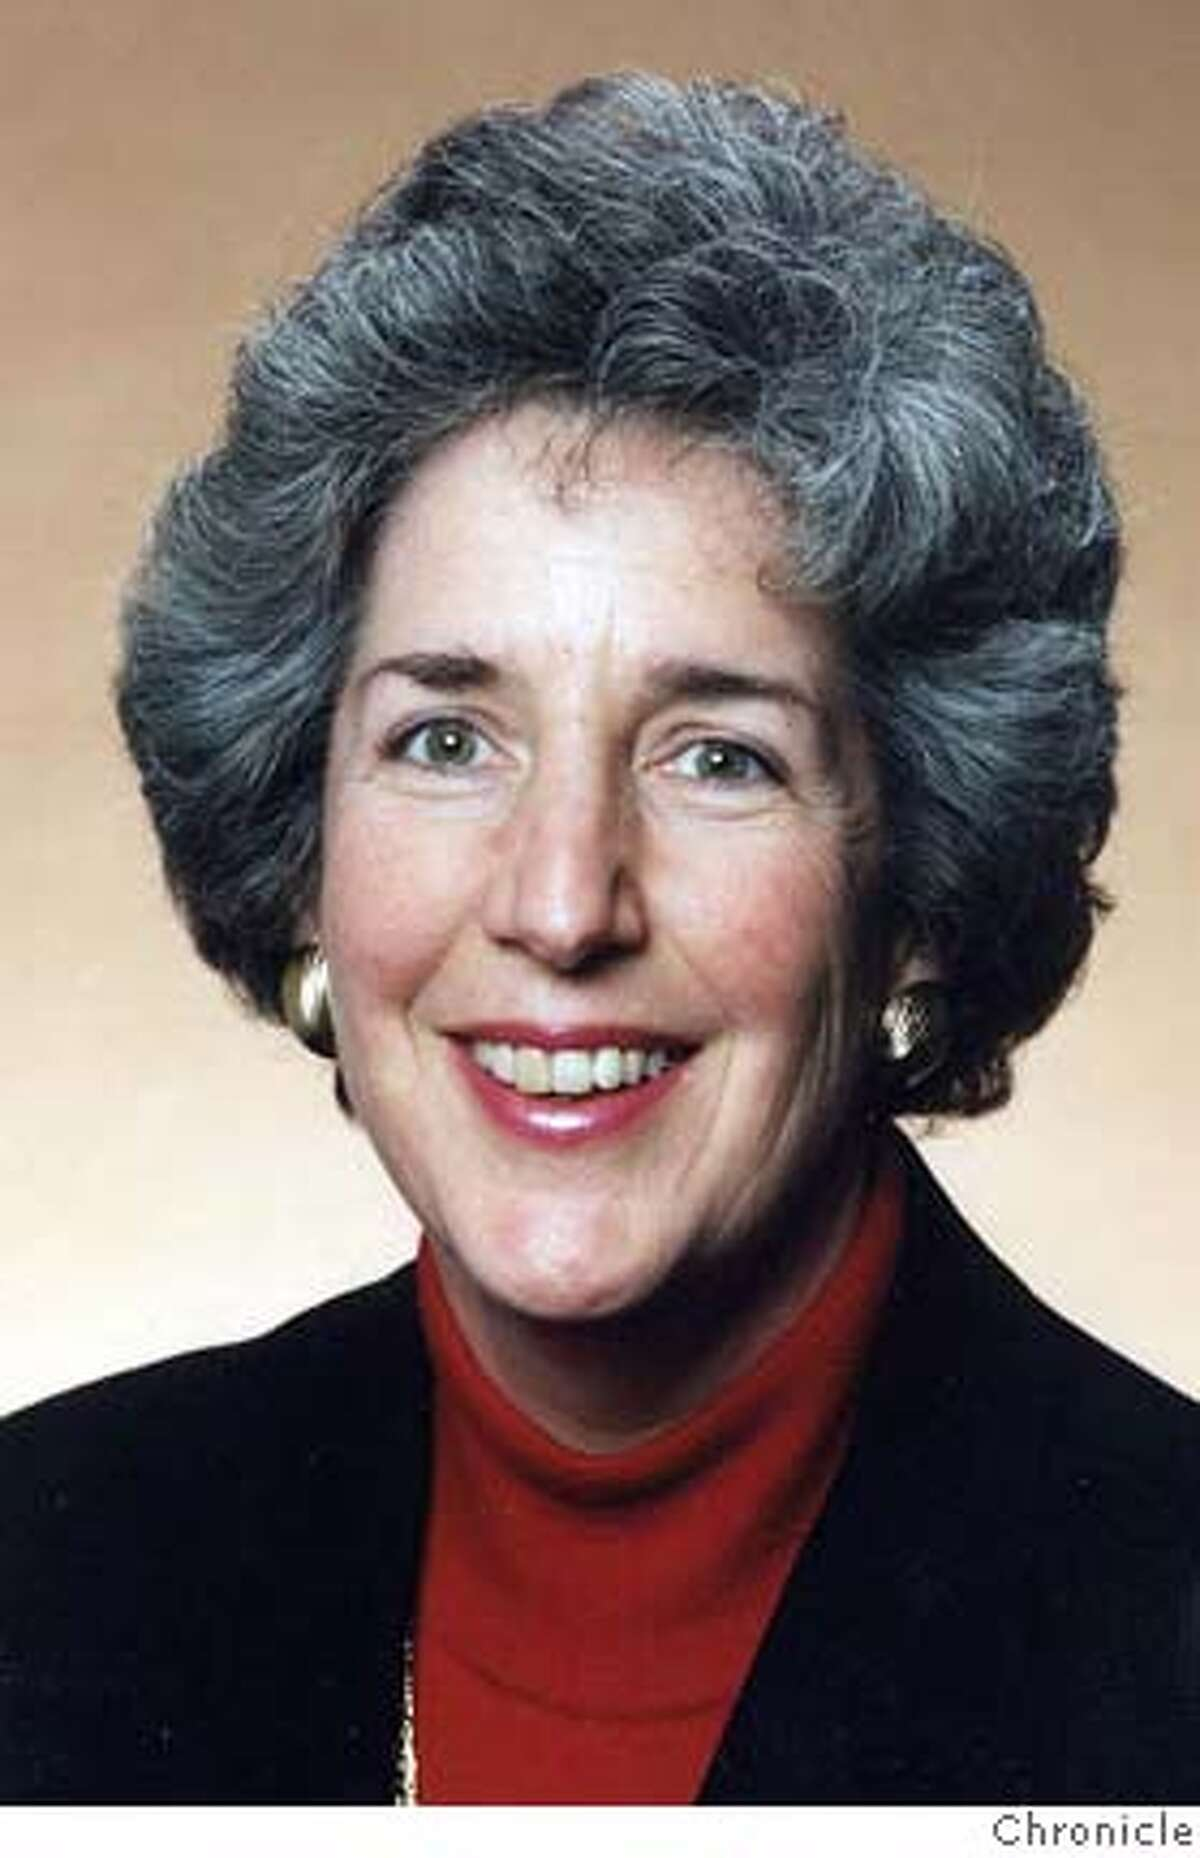 Justice Carol Corrigan is one of three potential candidates for state Supreme Court whose names were submitted by Schwarzenegger to State Bar commission for review.